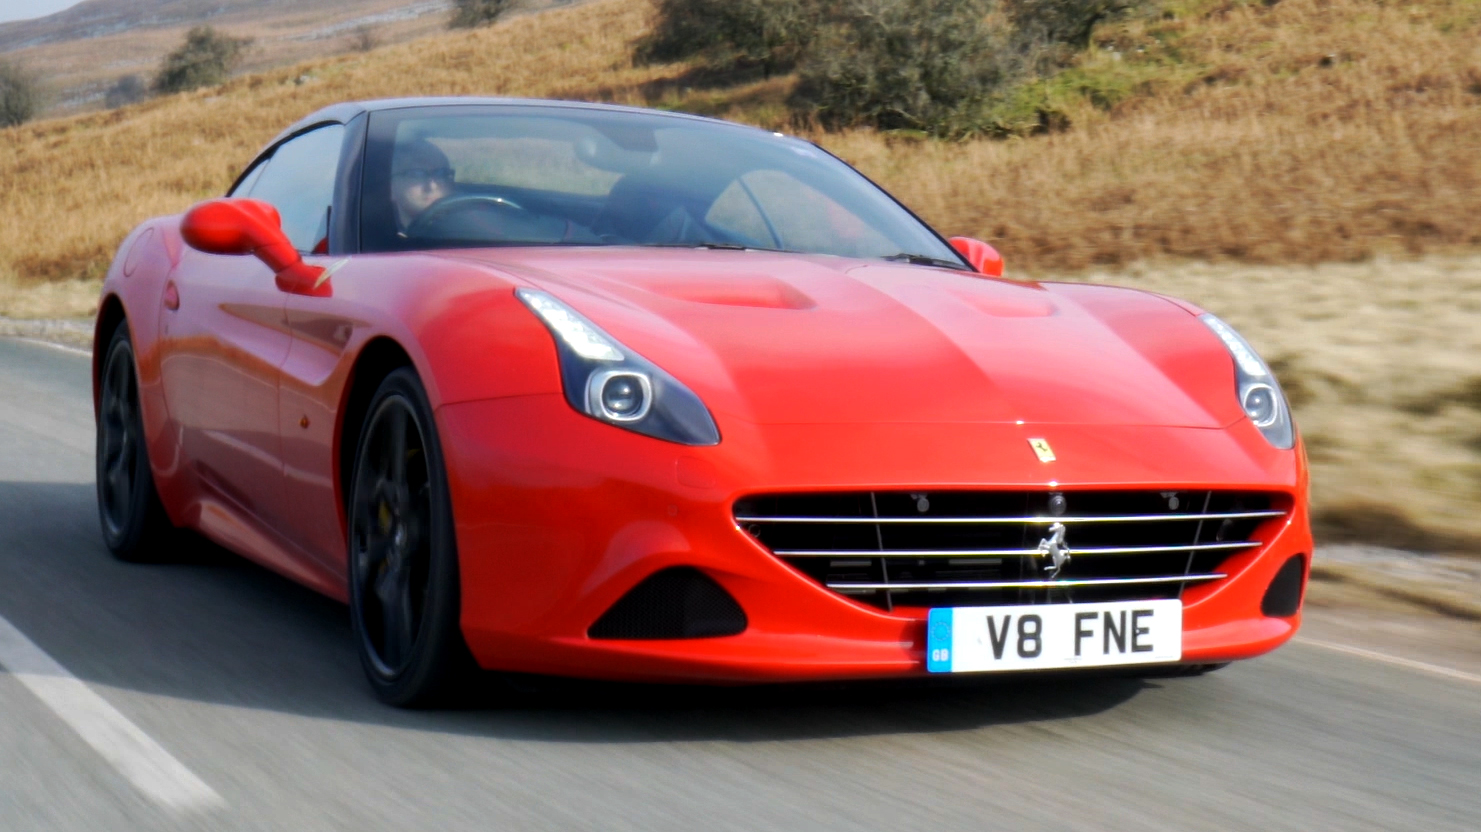 Video: The Ferrari California T: Better looking than before